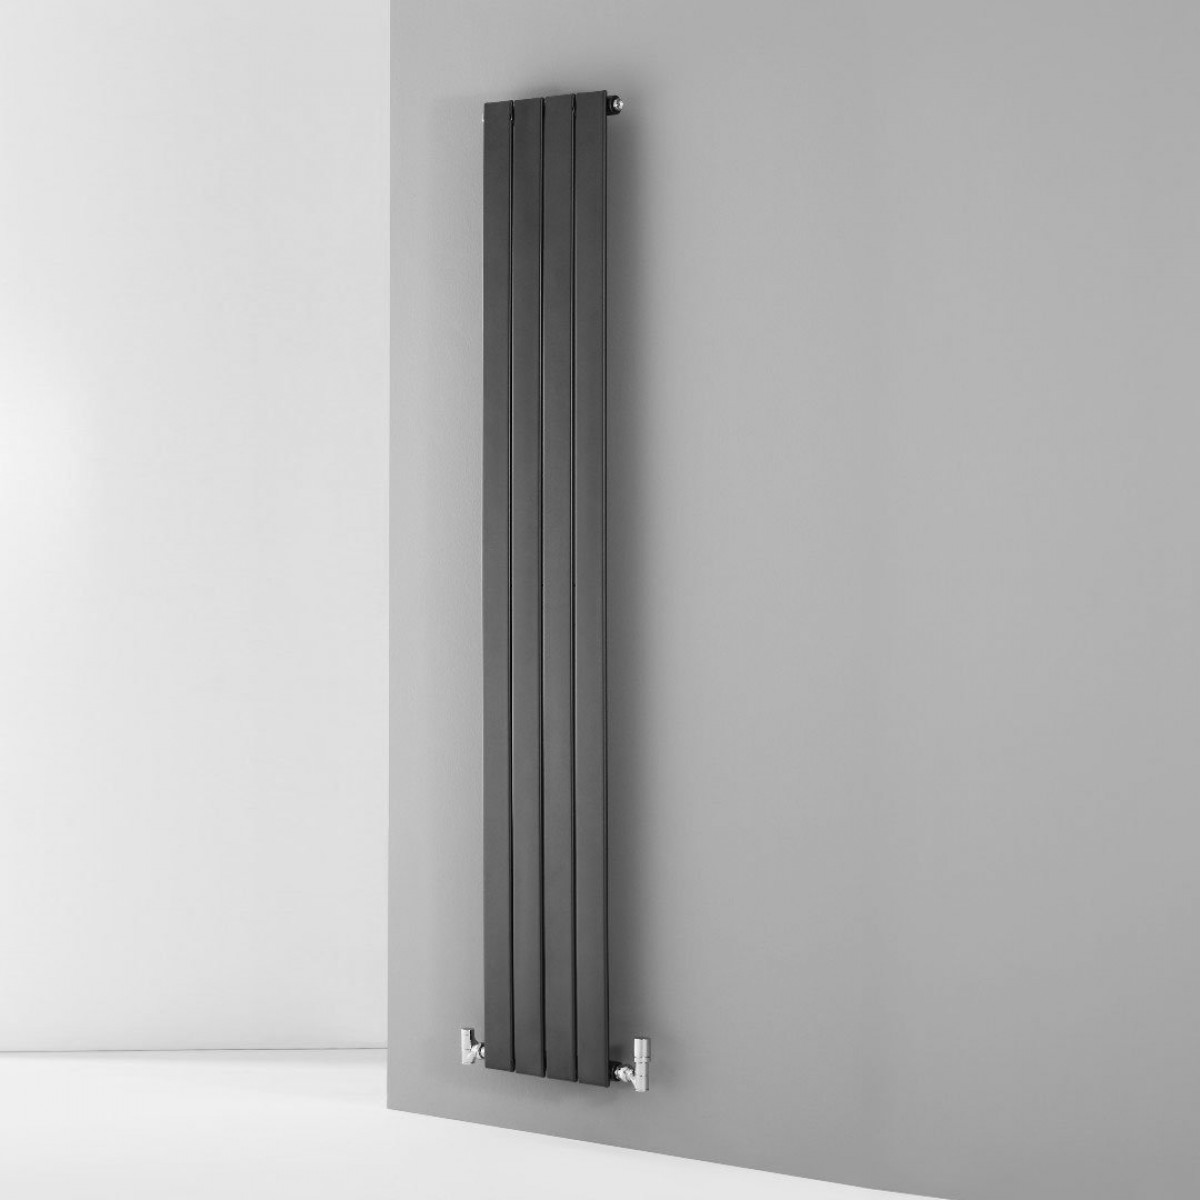 Ideal Essential, Virgo Towel Warmer, Anthracite Finish